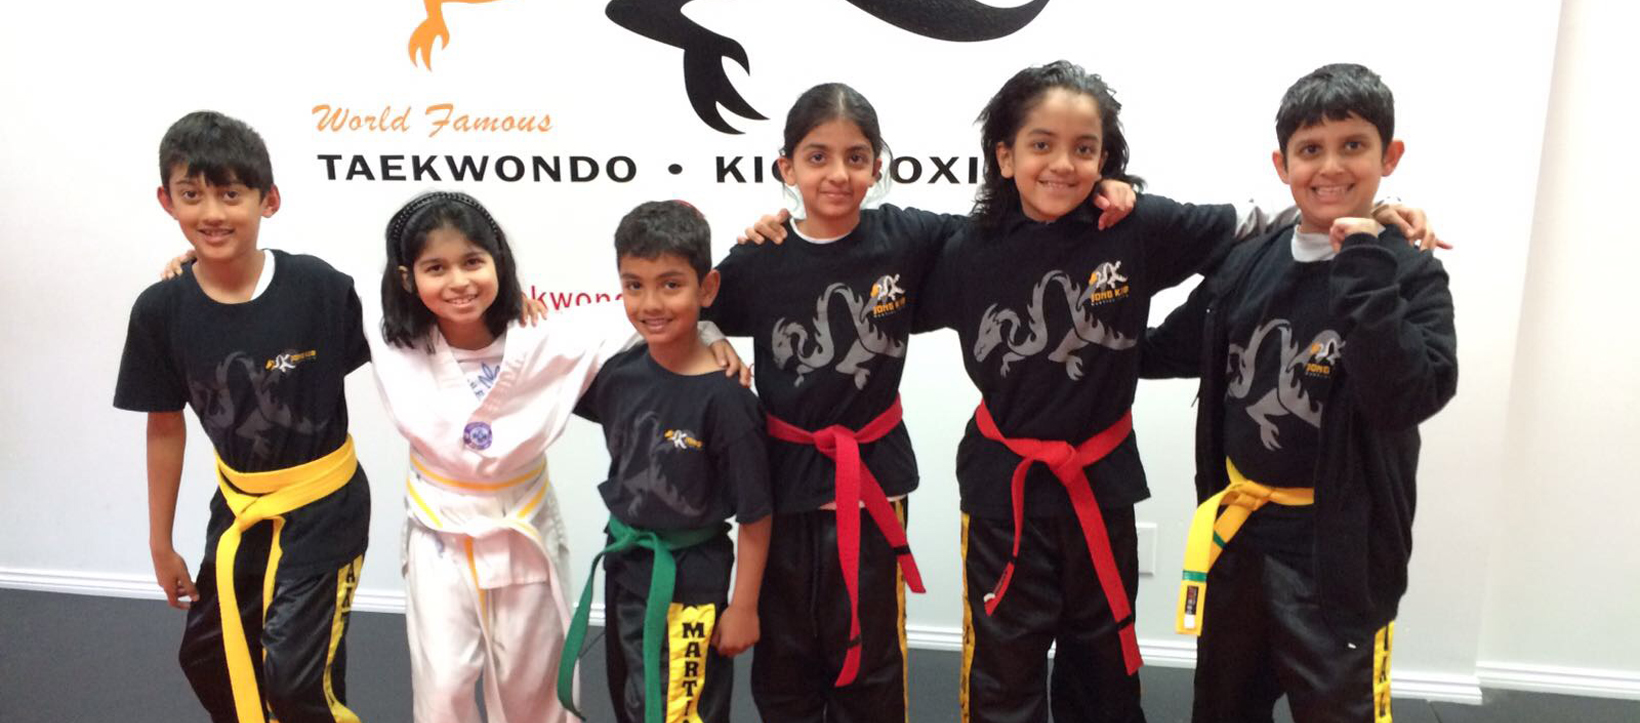 best taekwondo training surrey